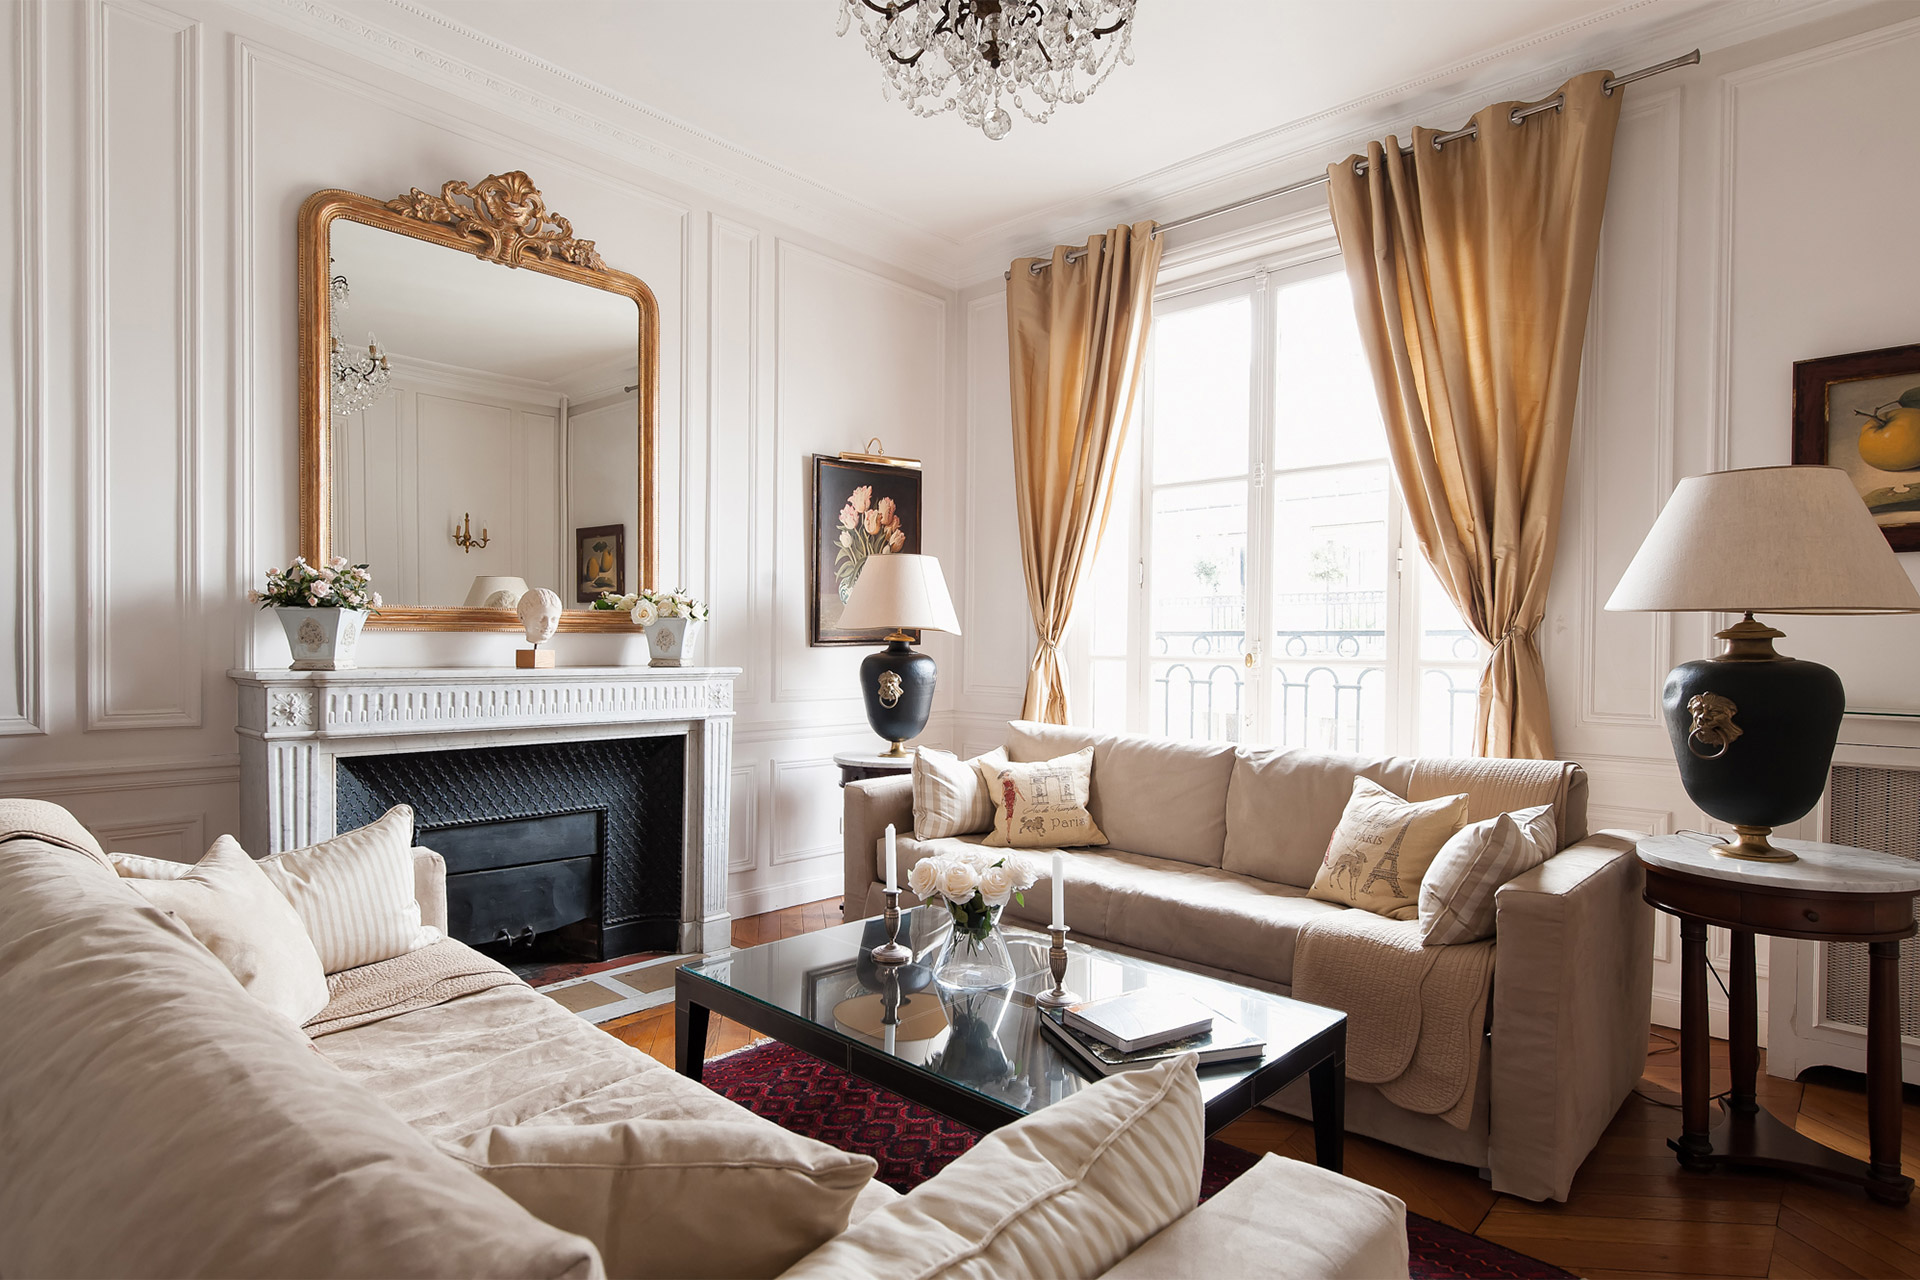 Paris Vacation Rental with Eiffel Tower Views